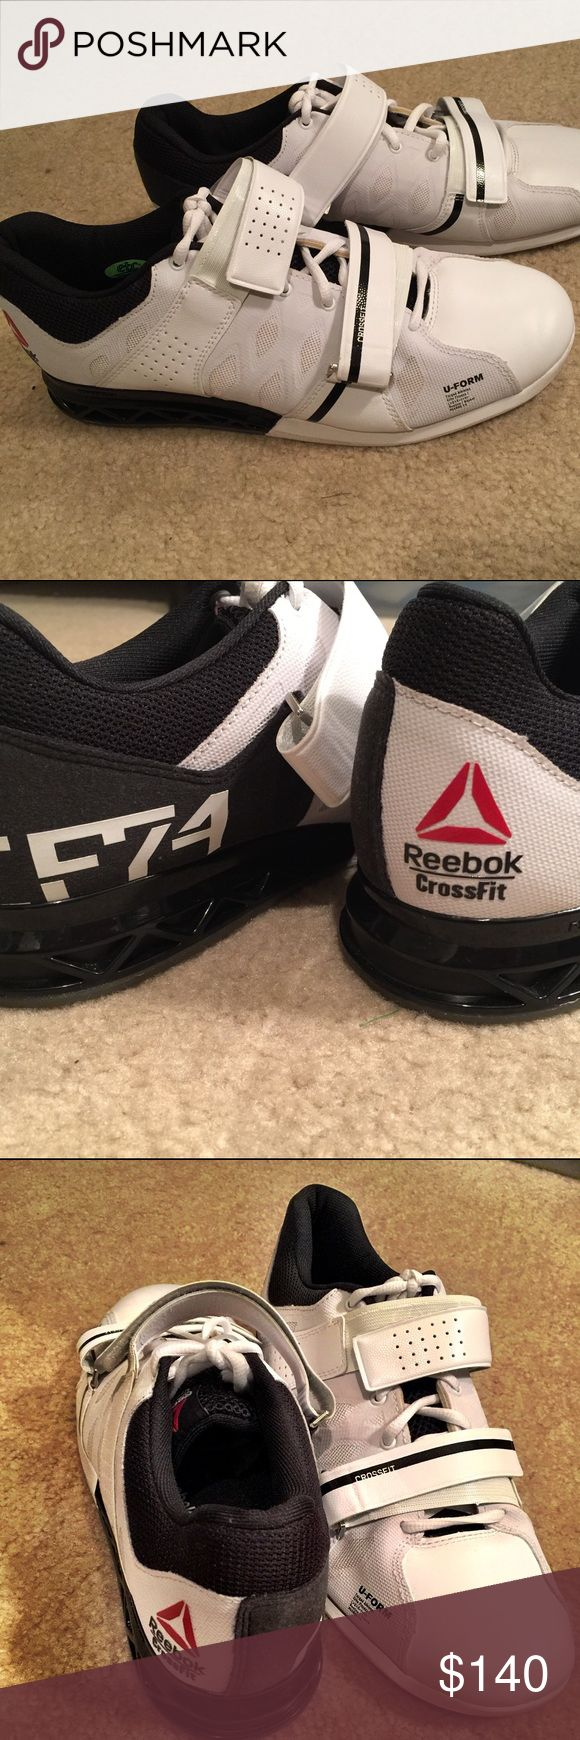 Reebok Crossfit Men's Lifter Plus White 2.0 Excellent condition. Just worn once and only inside the gym. Purchased brand new and still looks brand new! Can't say anything better than what you see in the pics. Happy lifting! Reebok Shoes Athletic Shoes